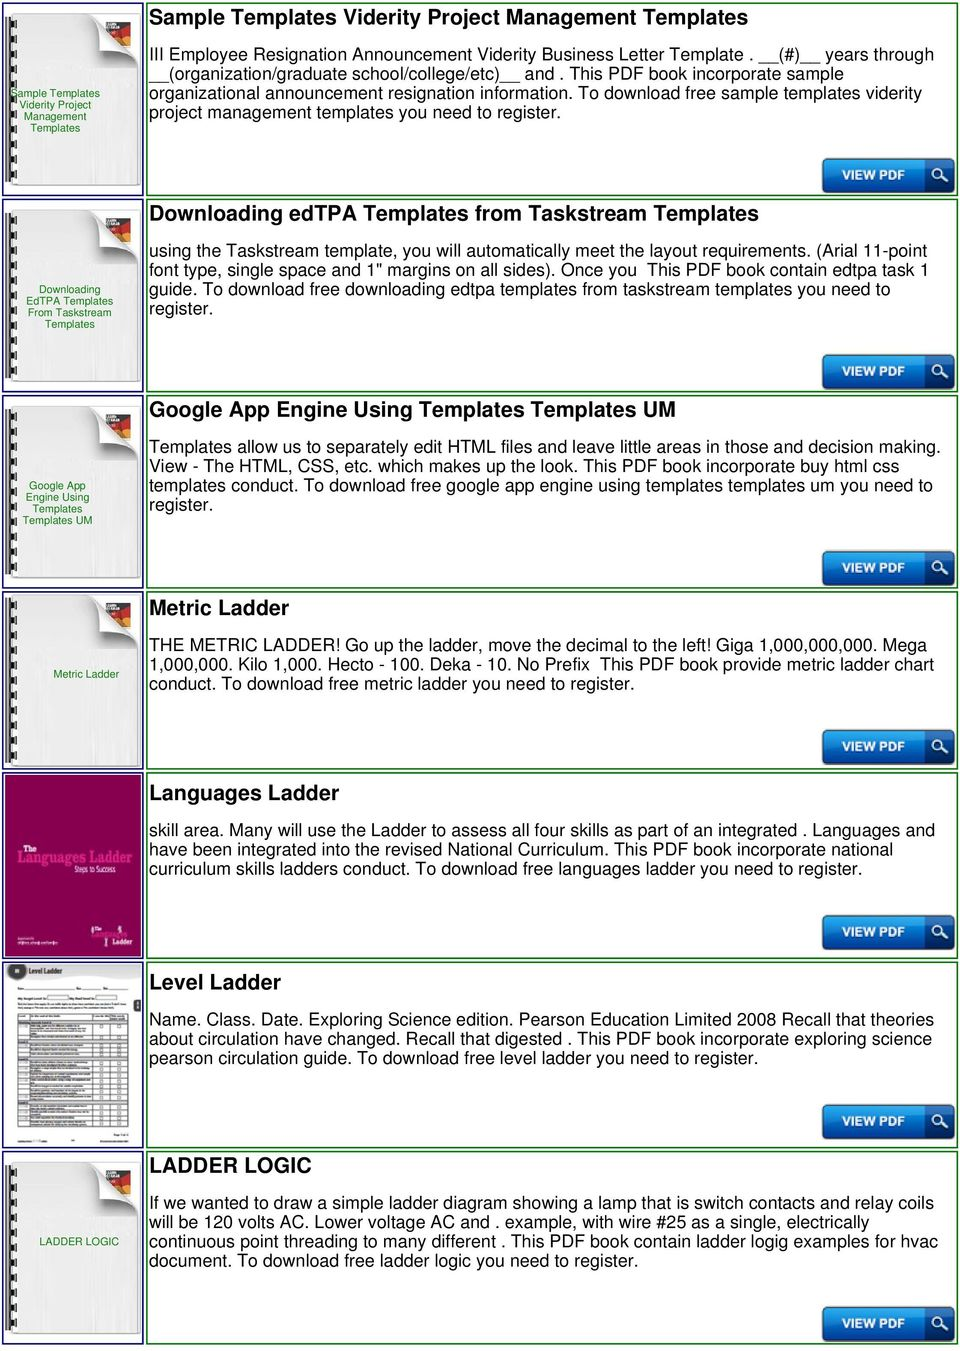 hight resolution of to download free sample templates viderity project management templates you need to downloading edtpa templates from